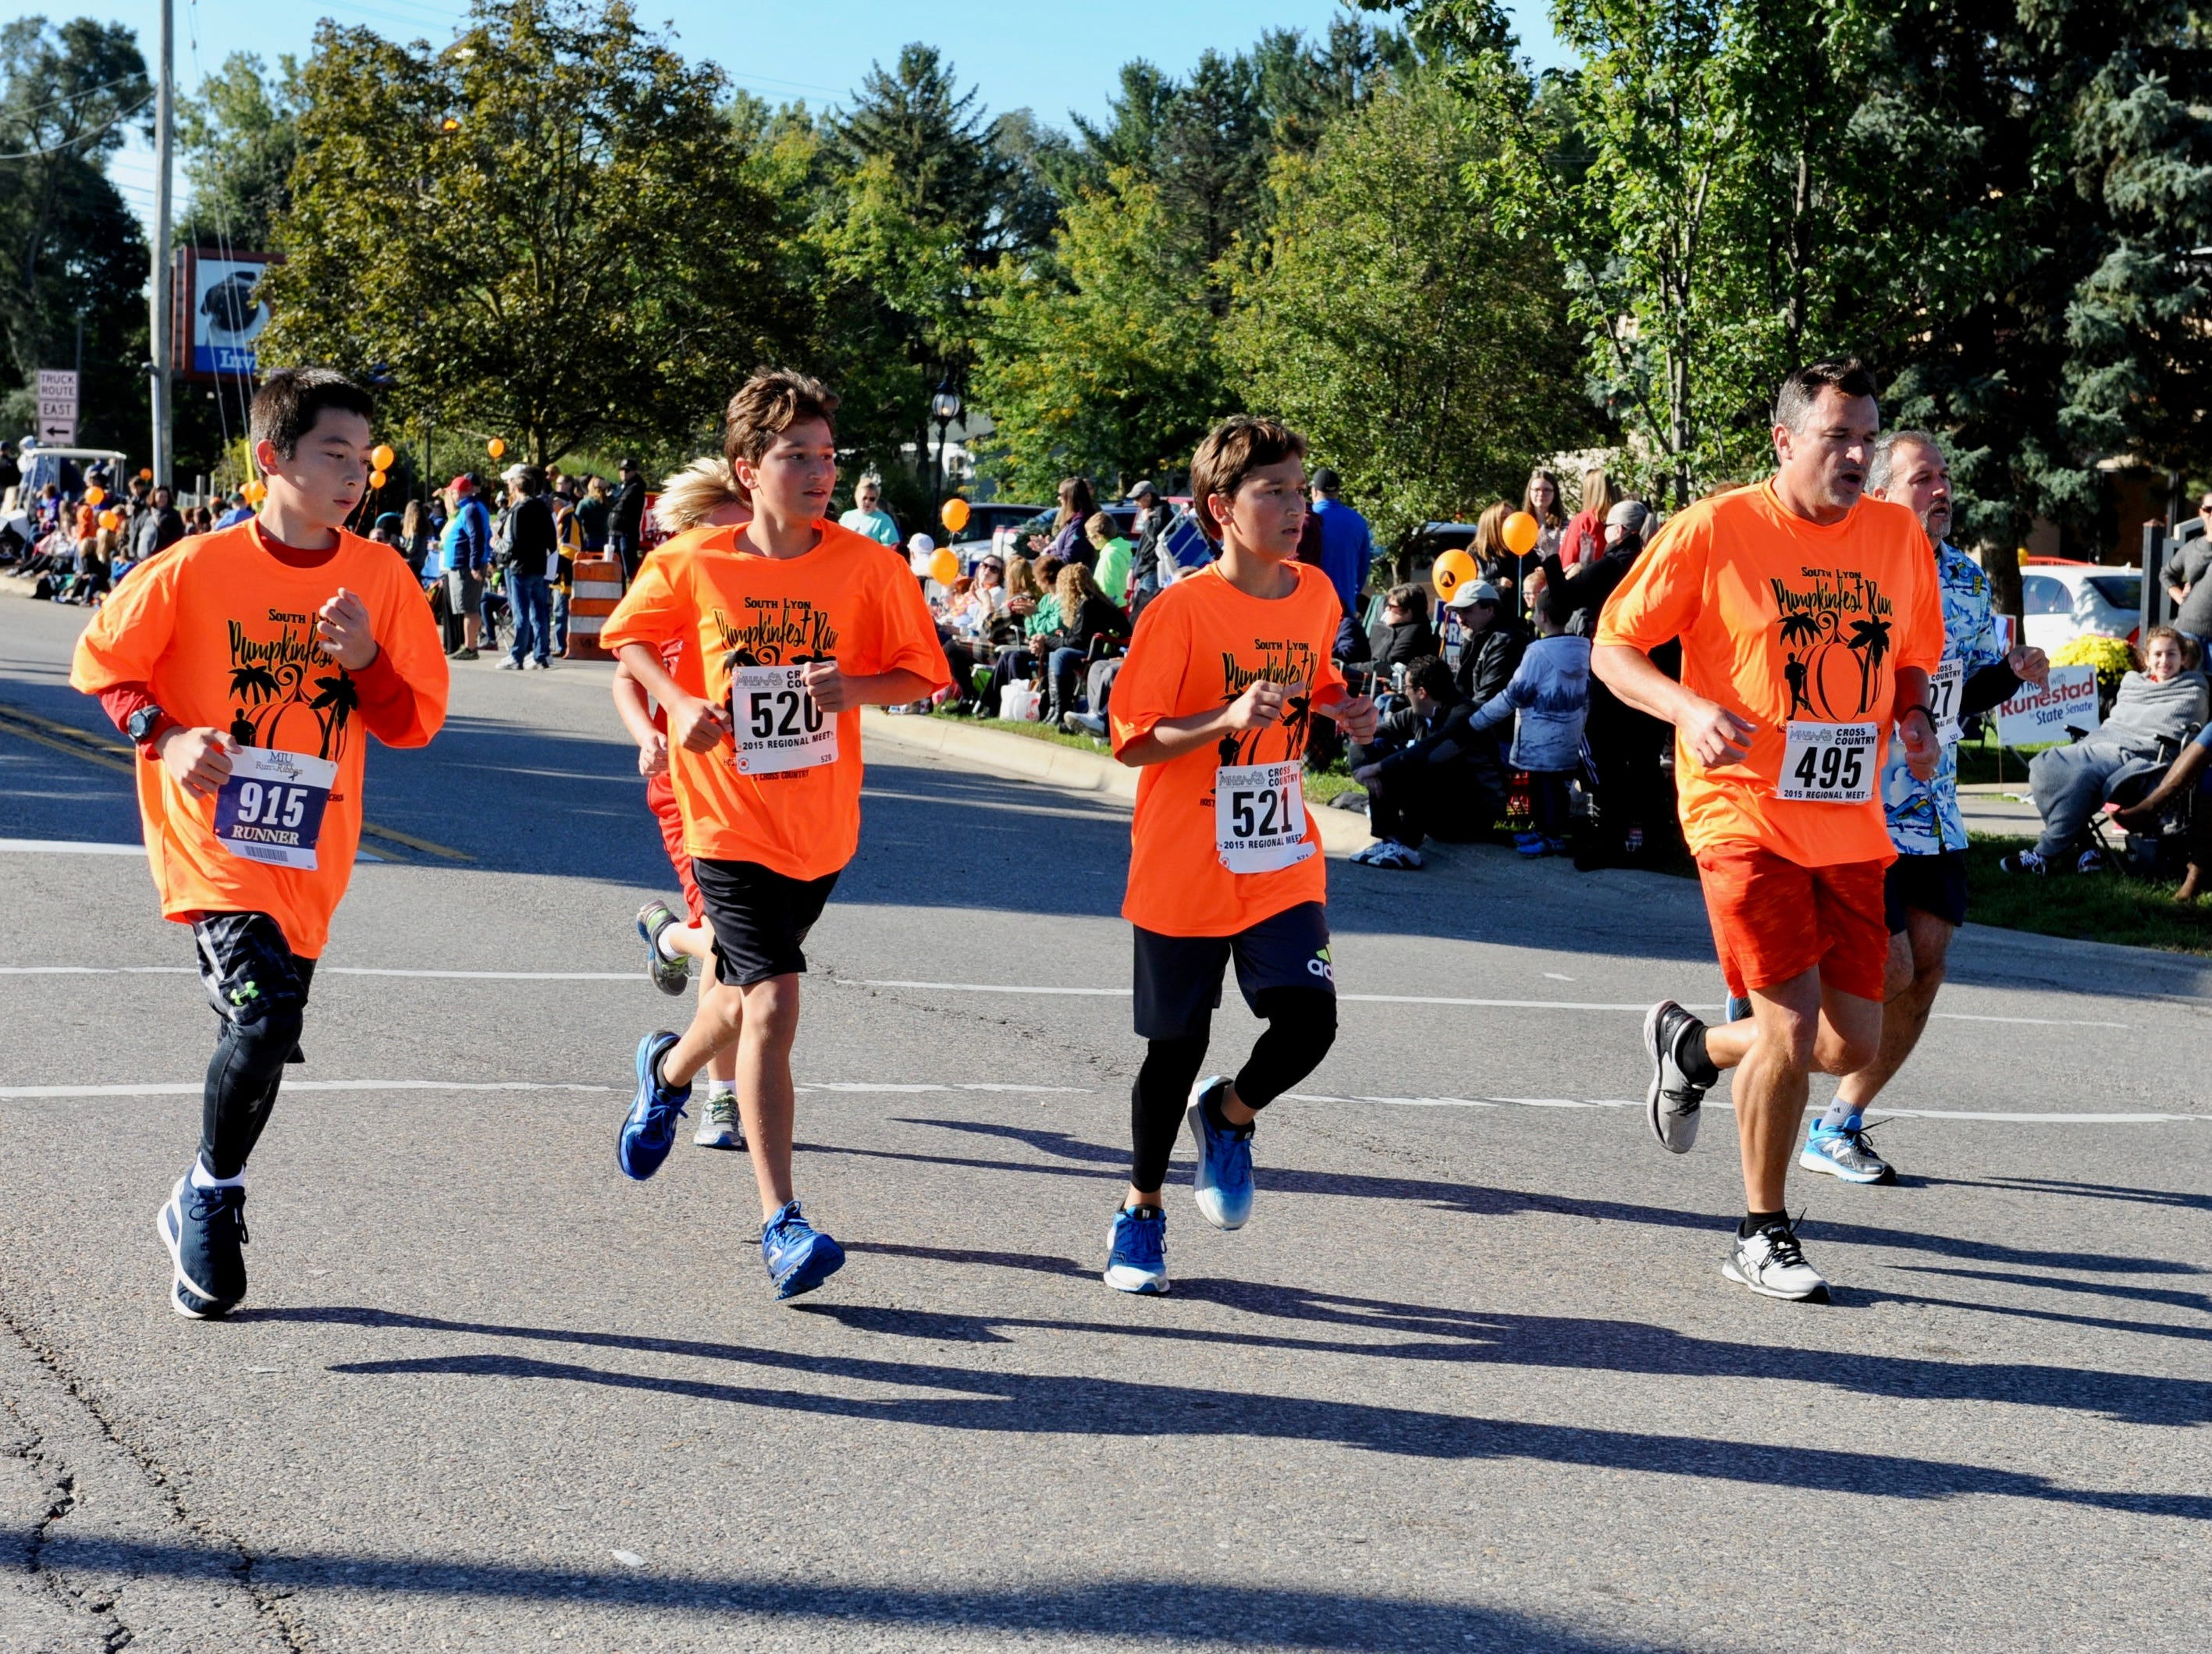 Runners take part in the 5K run in downtown South Lyon.